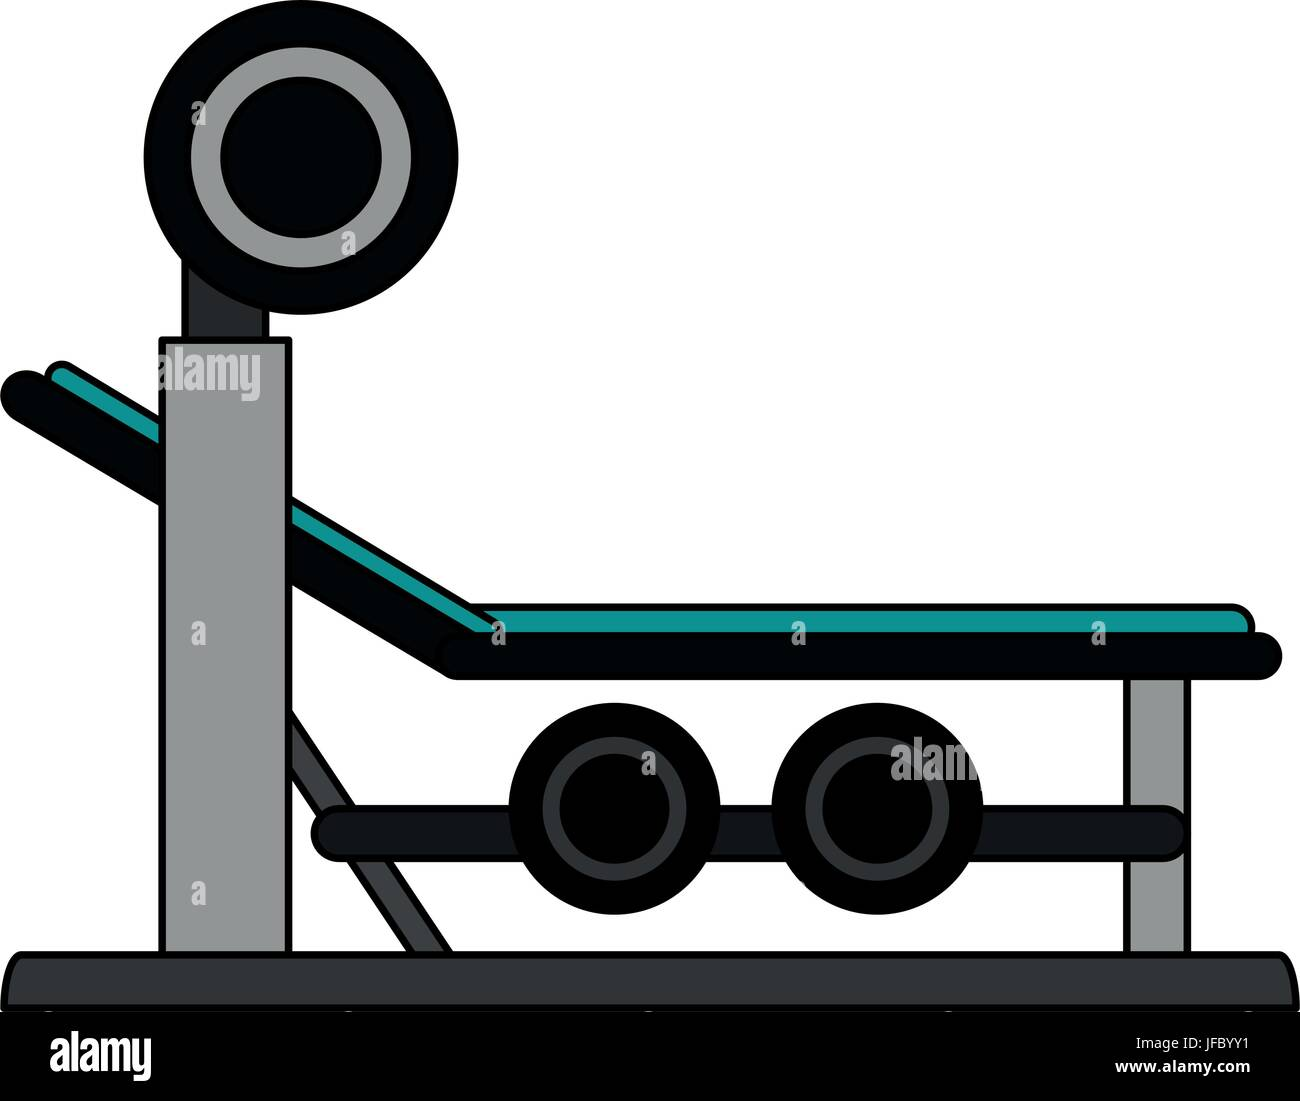 olympic incline bench vector illustration - Stock Vector